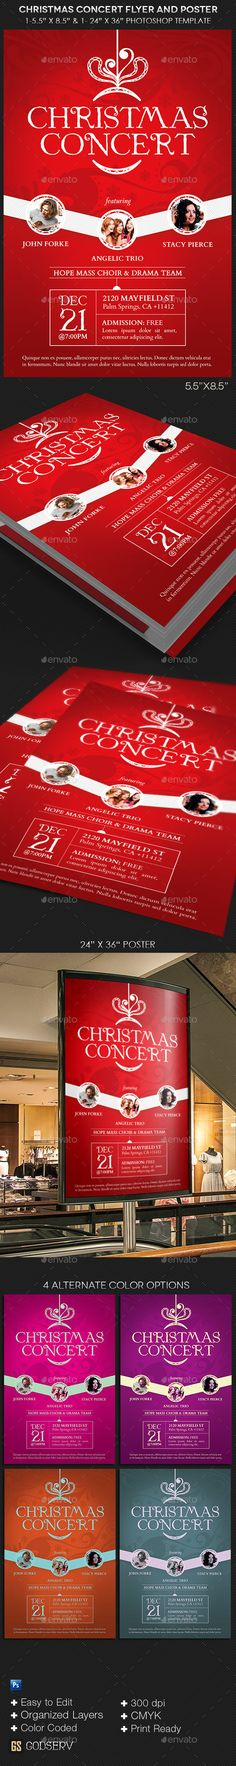 Musical Event Flyer Ticket CD Template Victorian, Muzikály a - christmas poster template